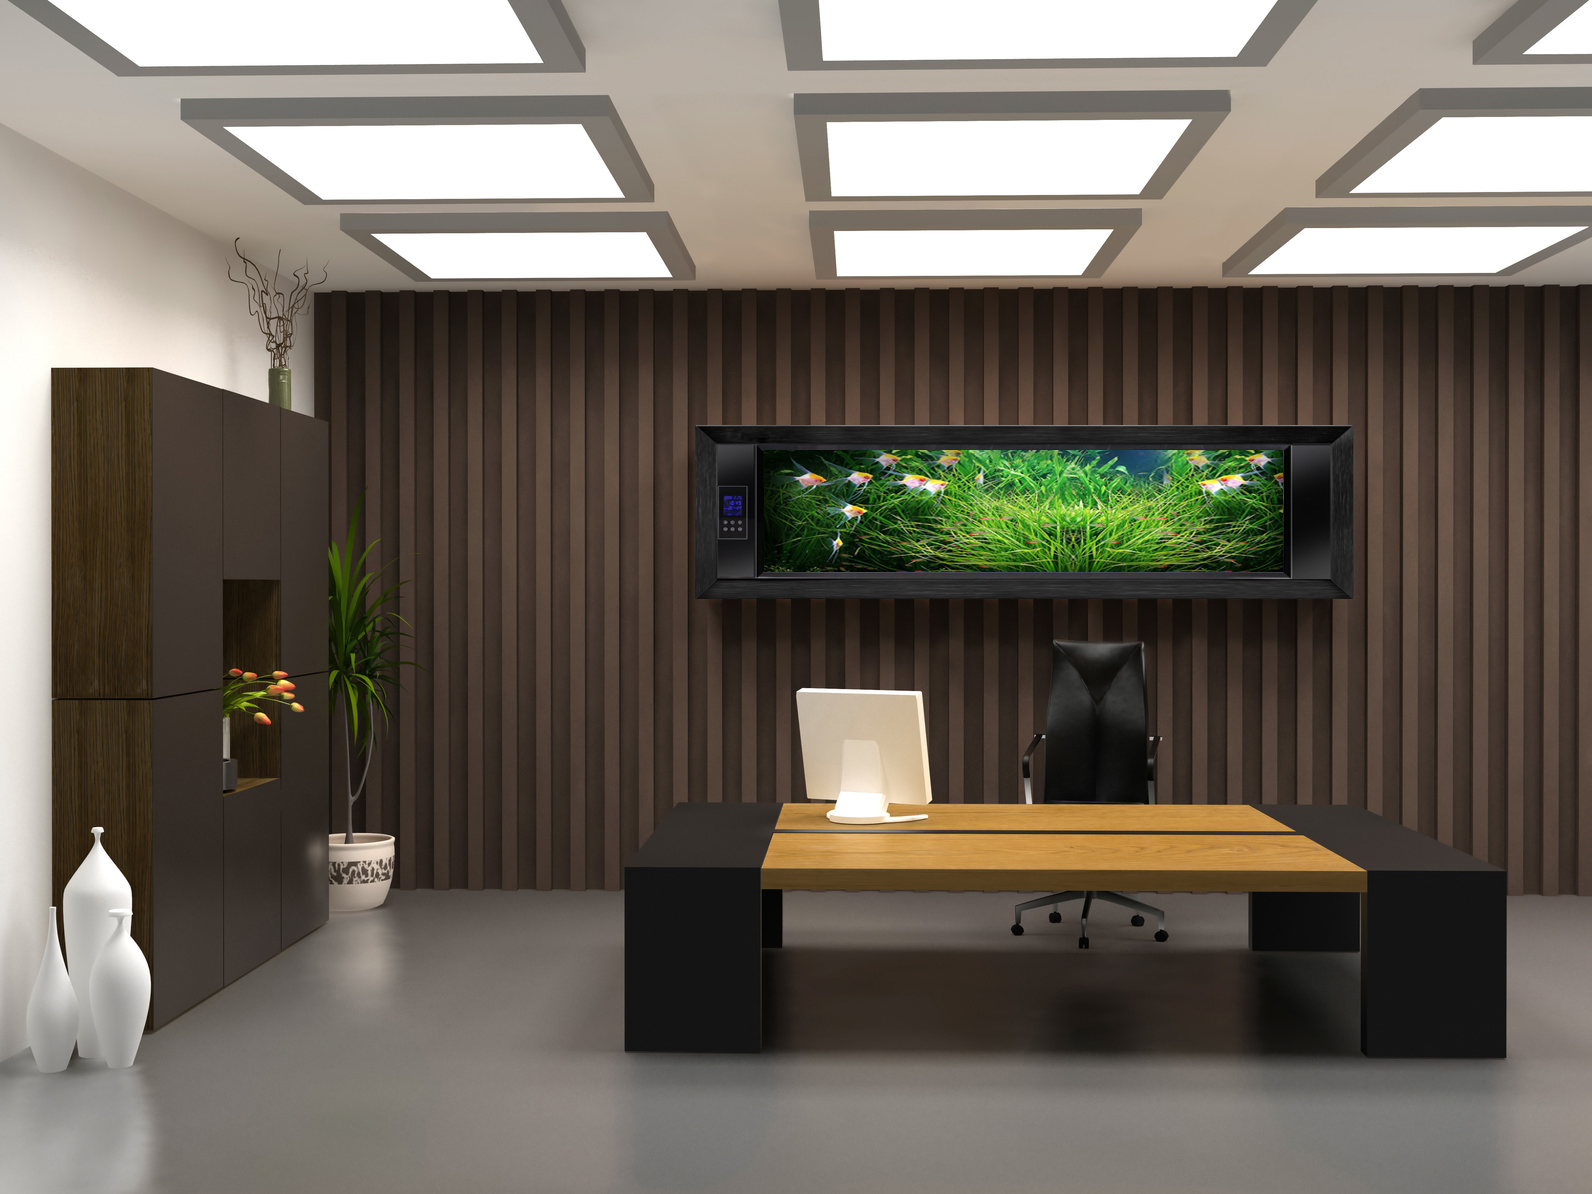 Elegant ceo office design bellisima Modern home office design ideas pictures